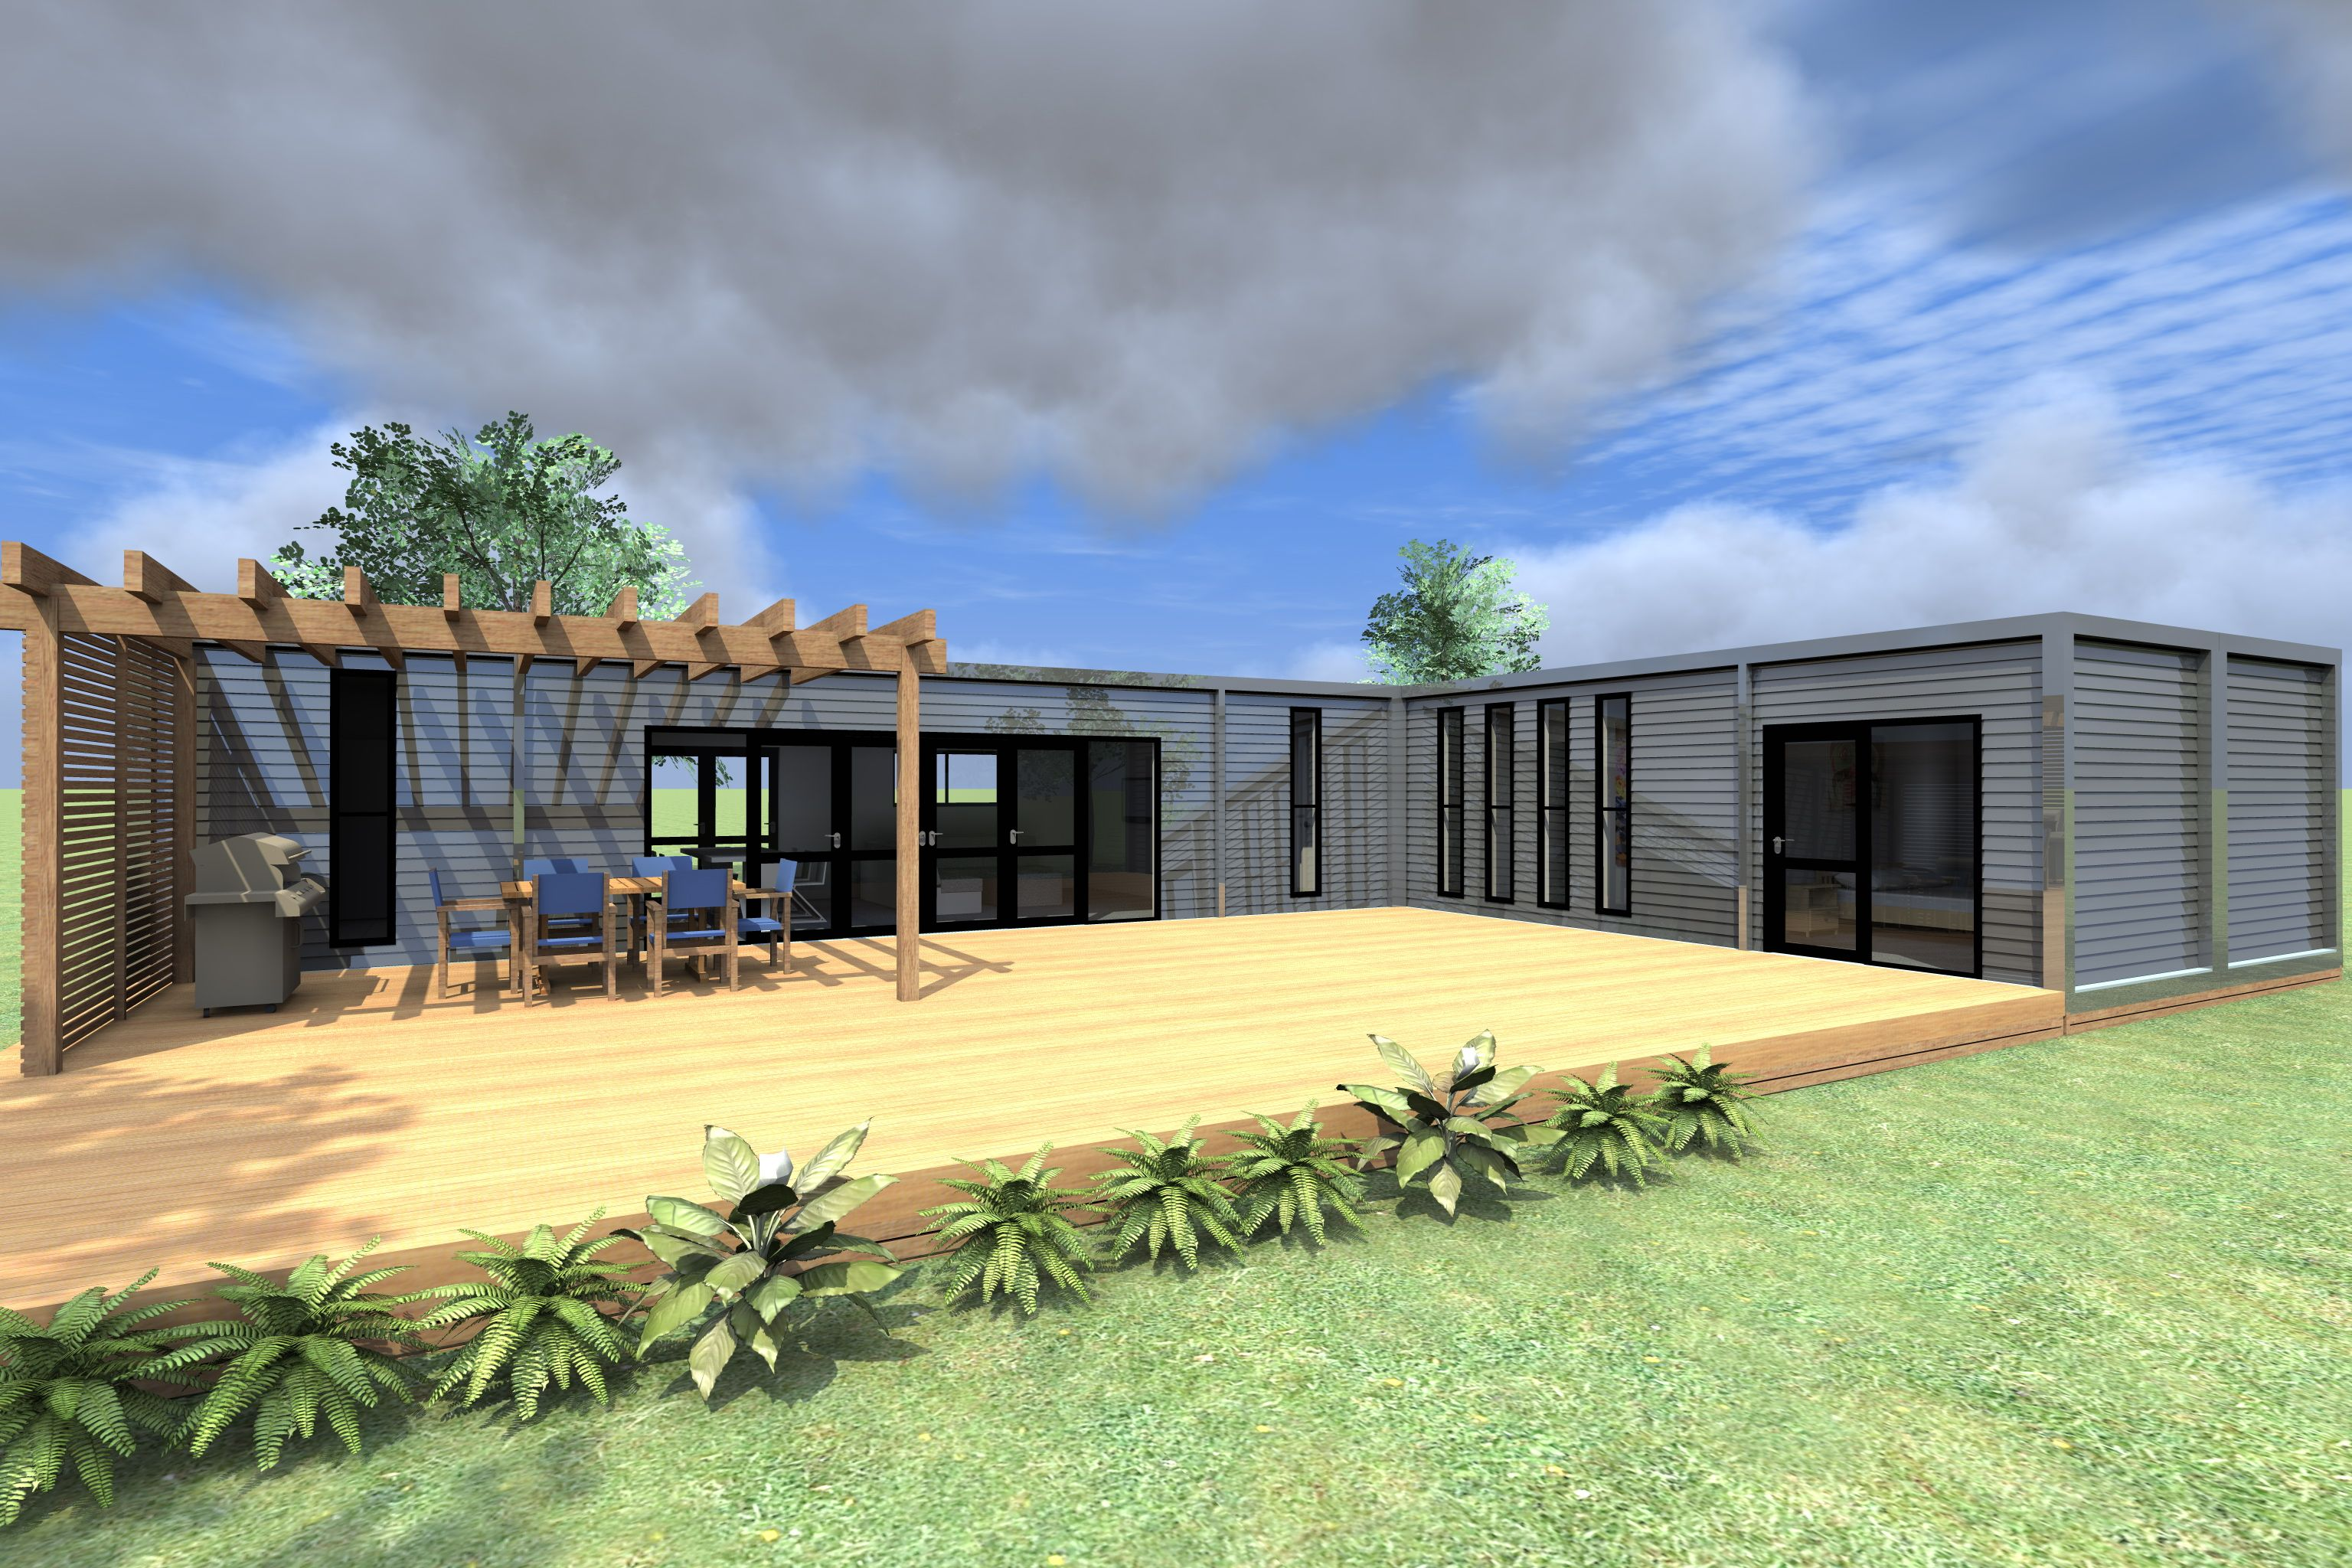 panama shipping container home model, cubular container buildings